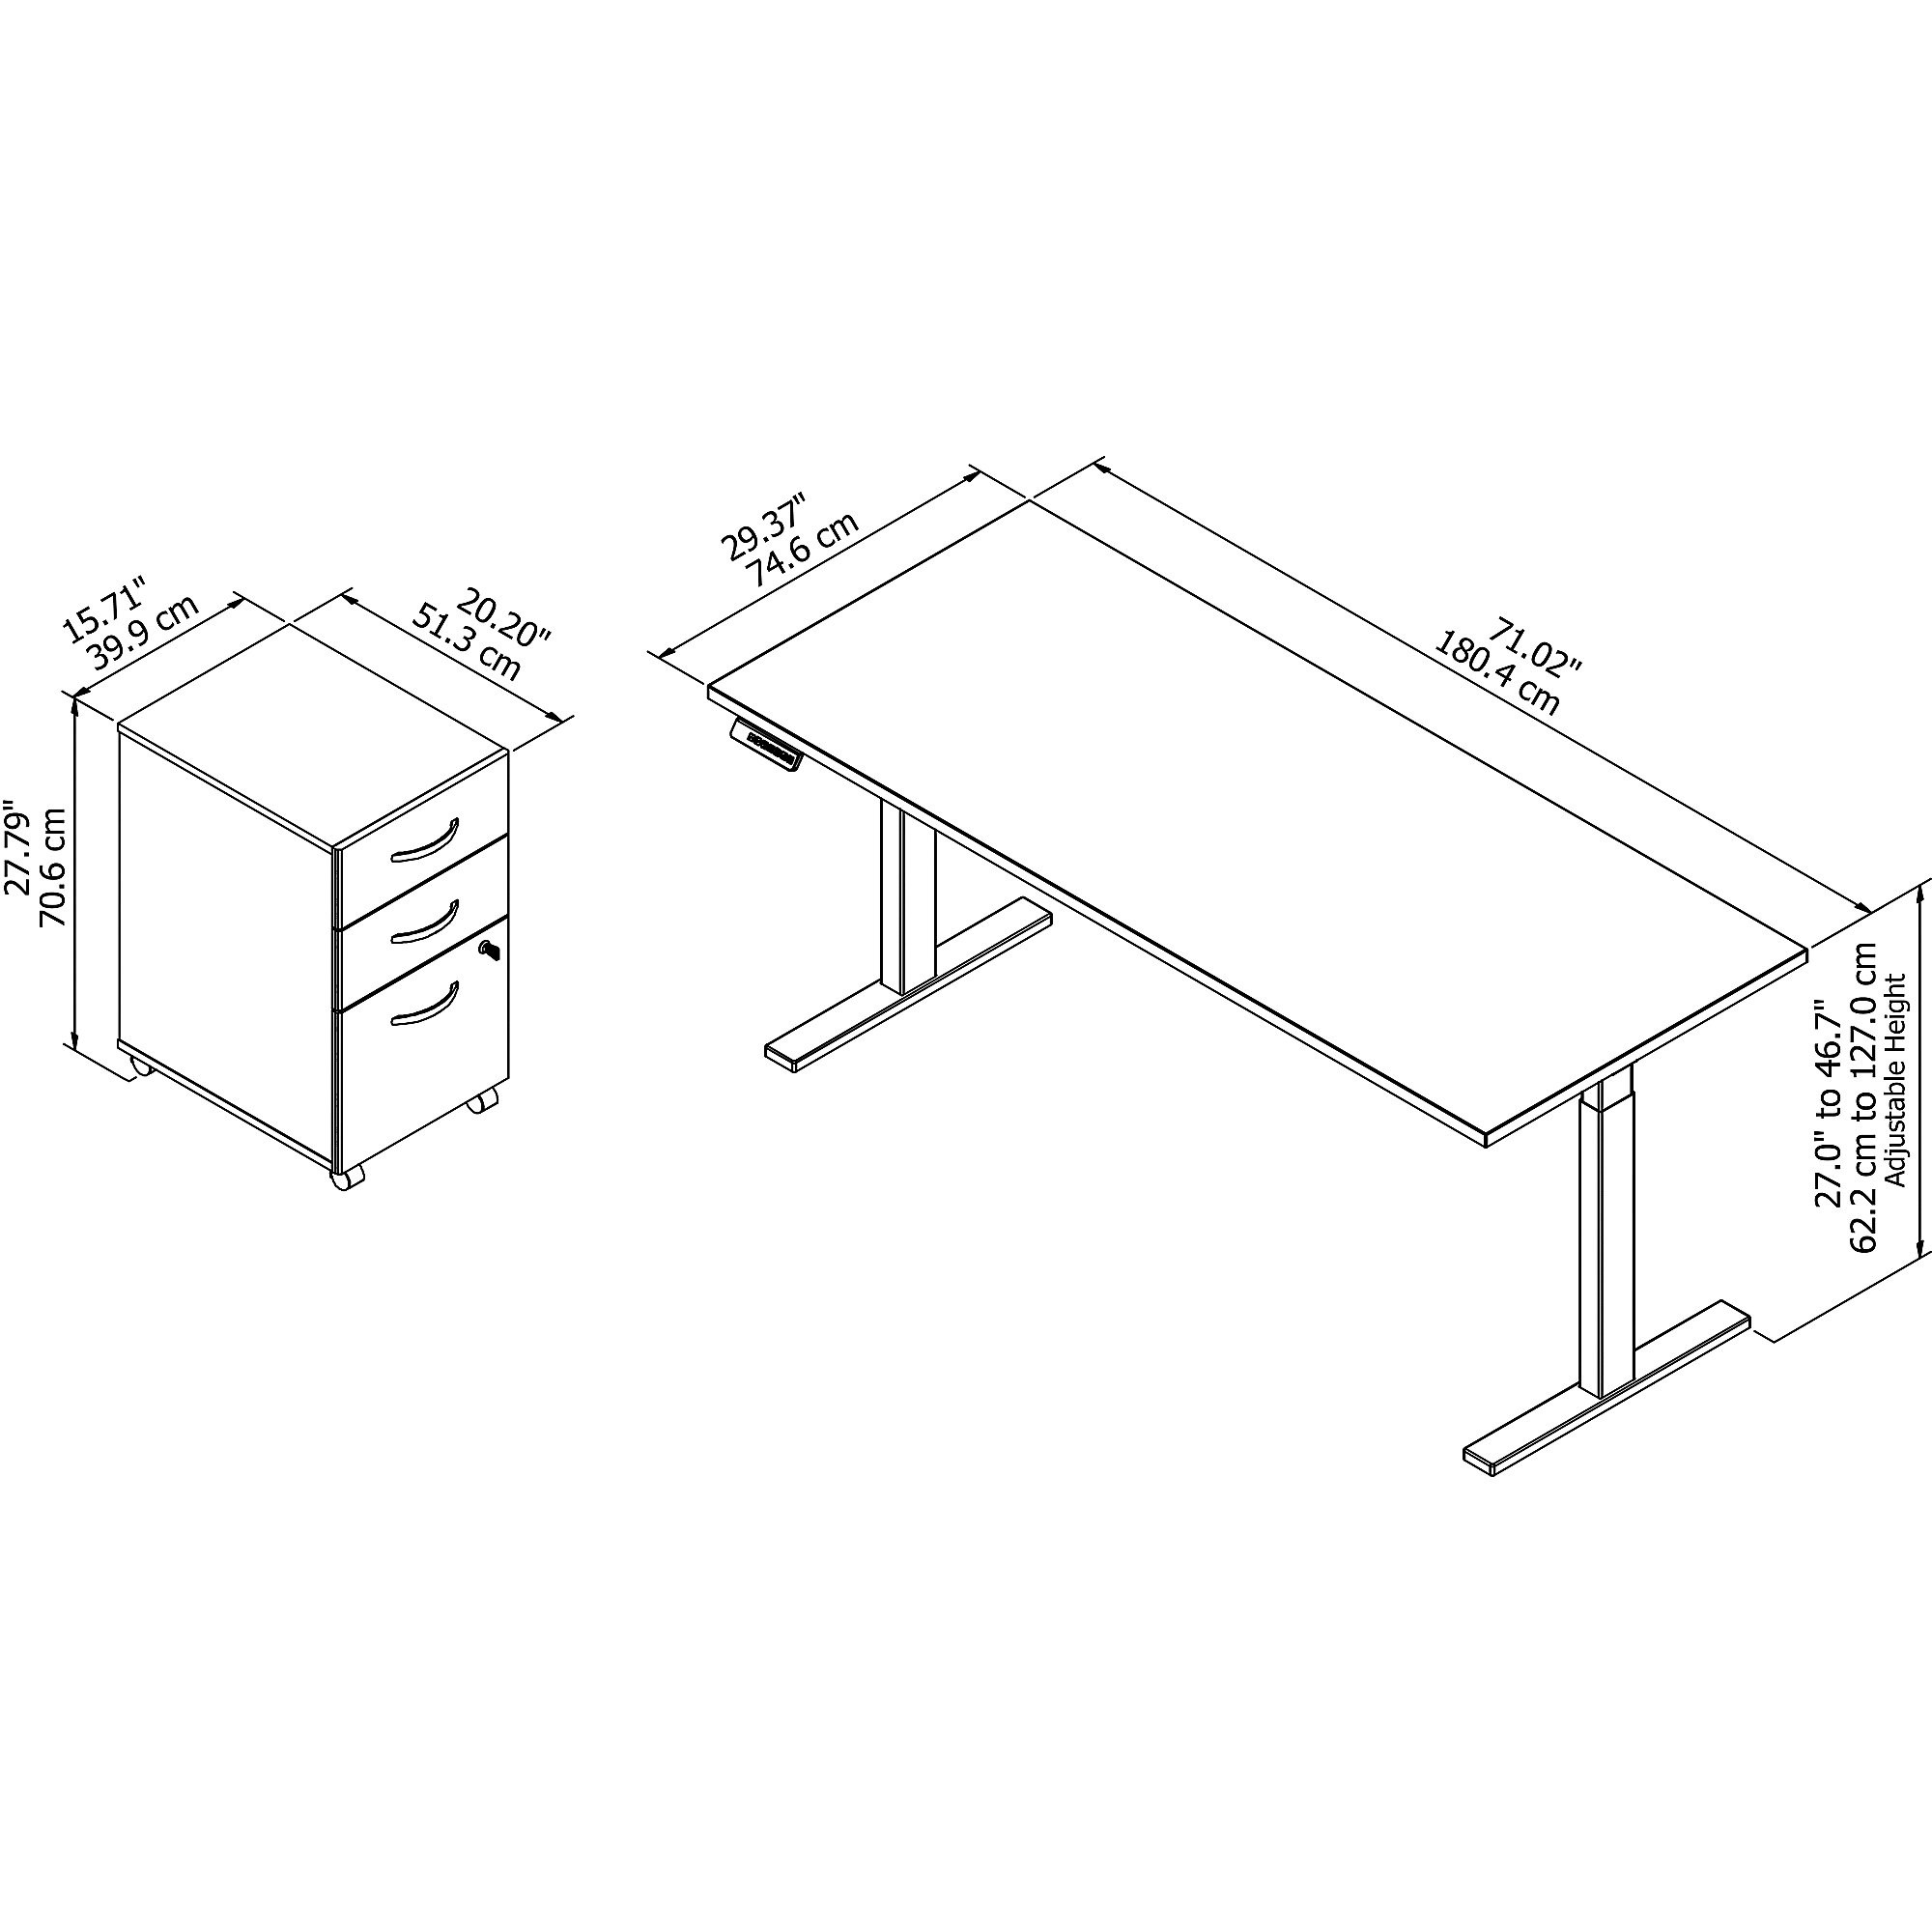 height adjustable desk and file dimensions